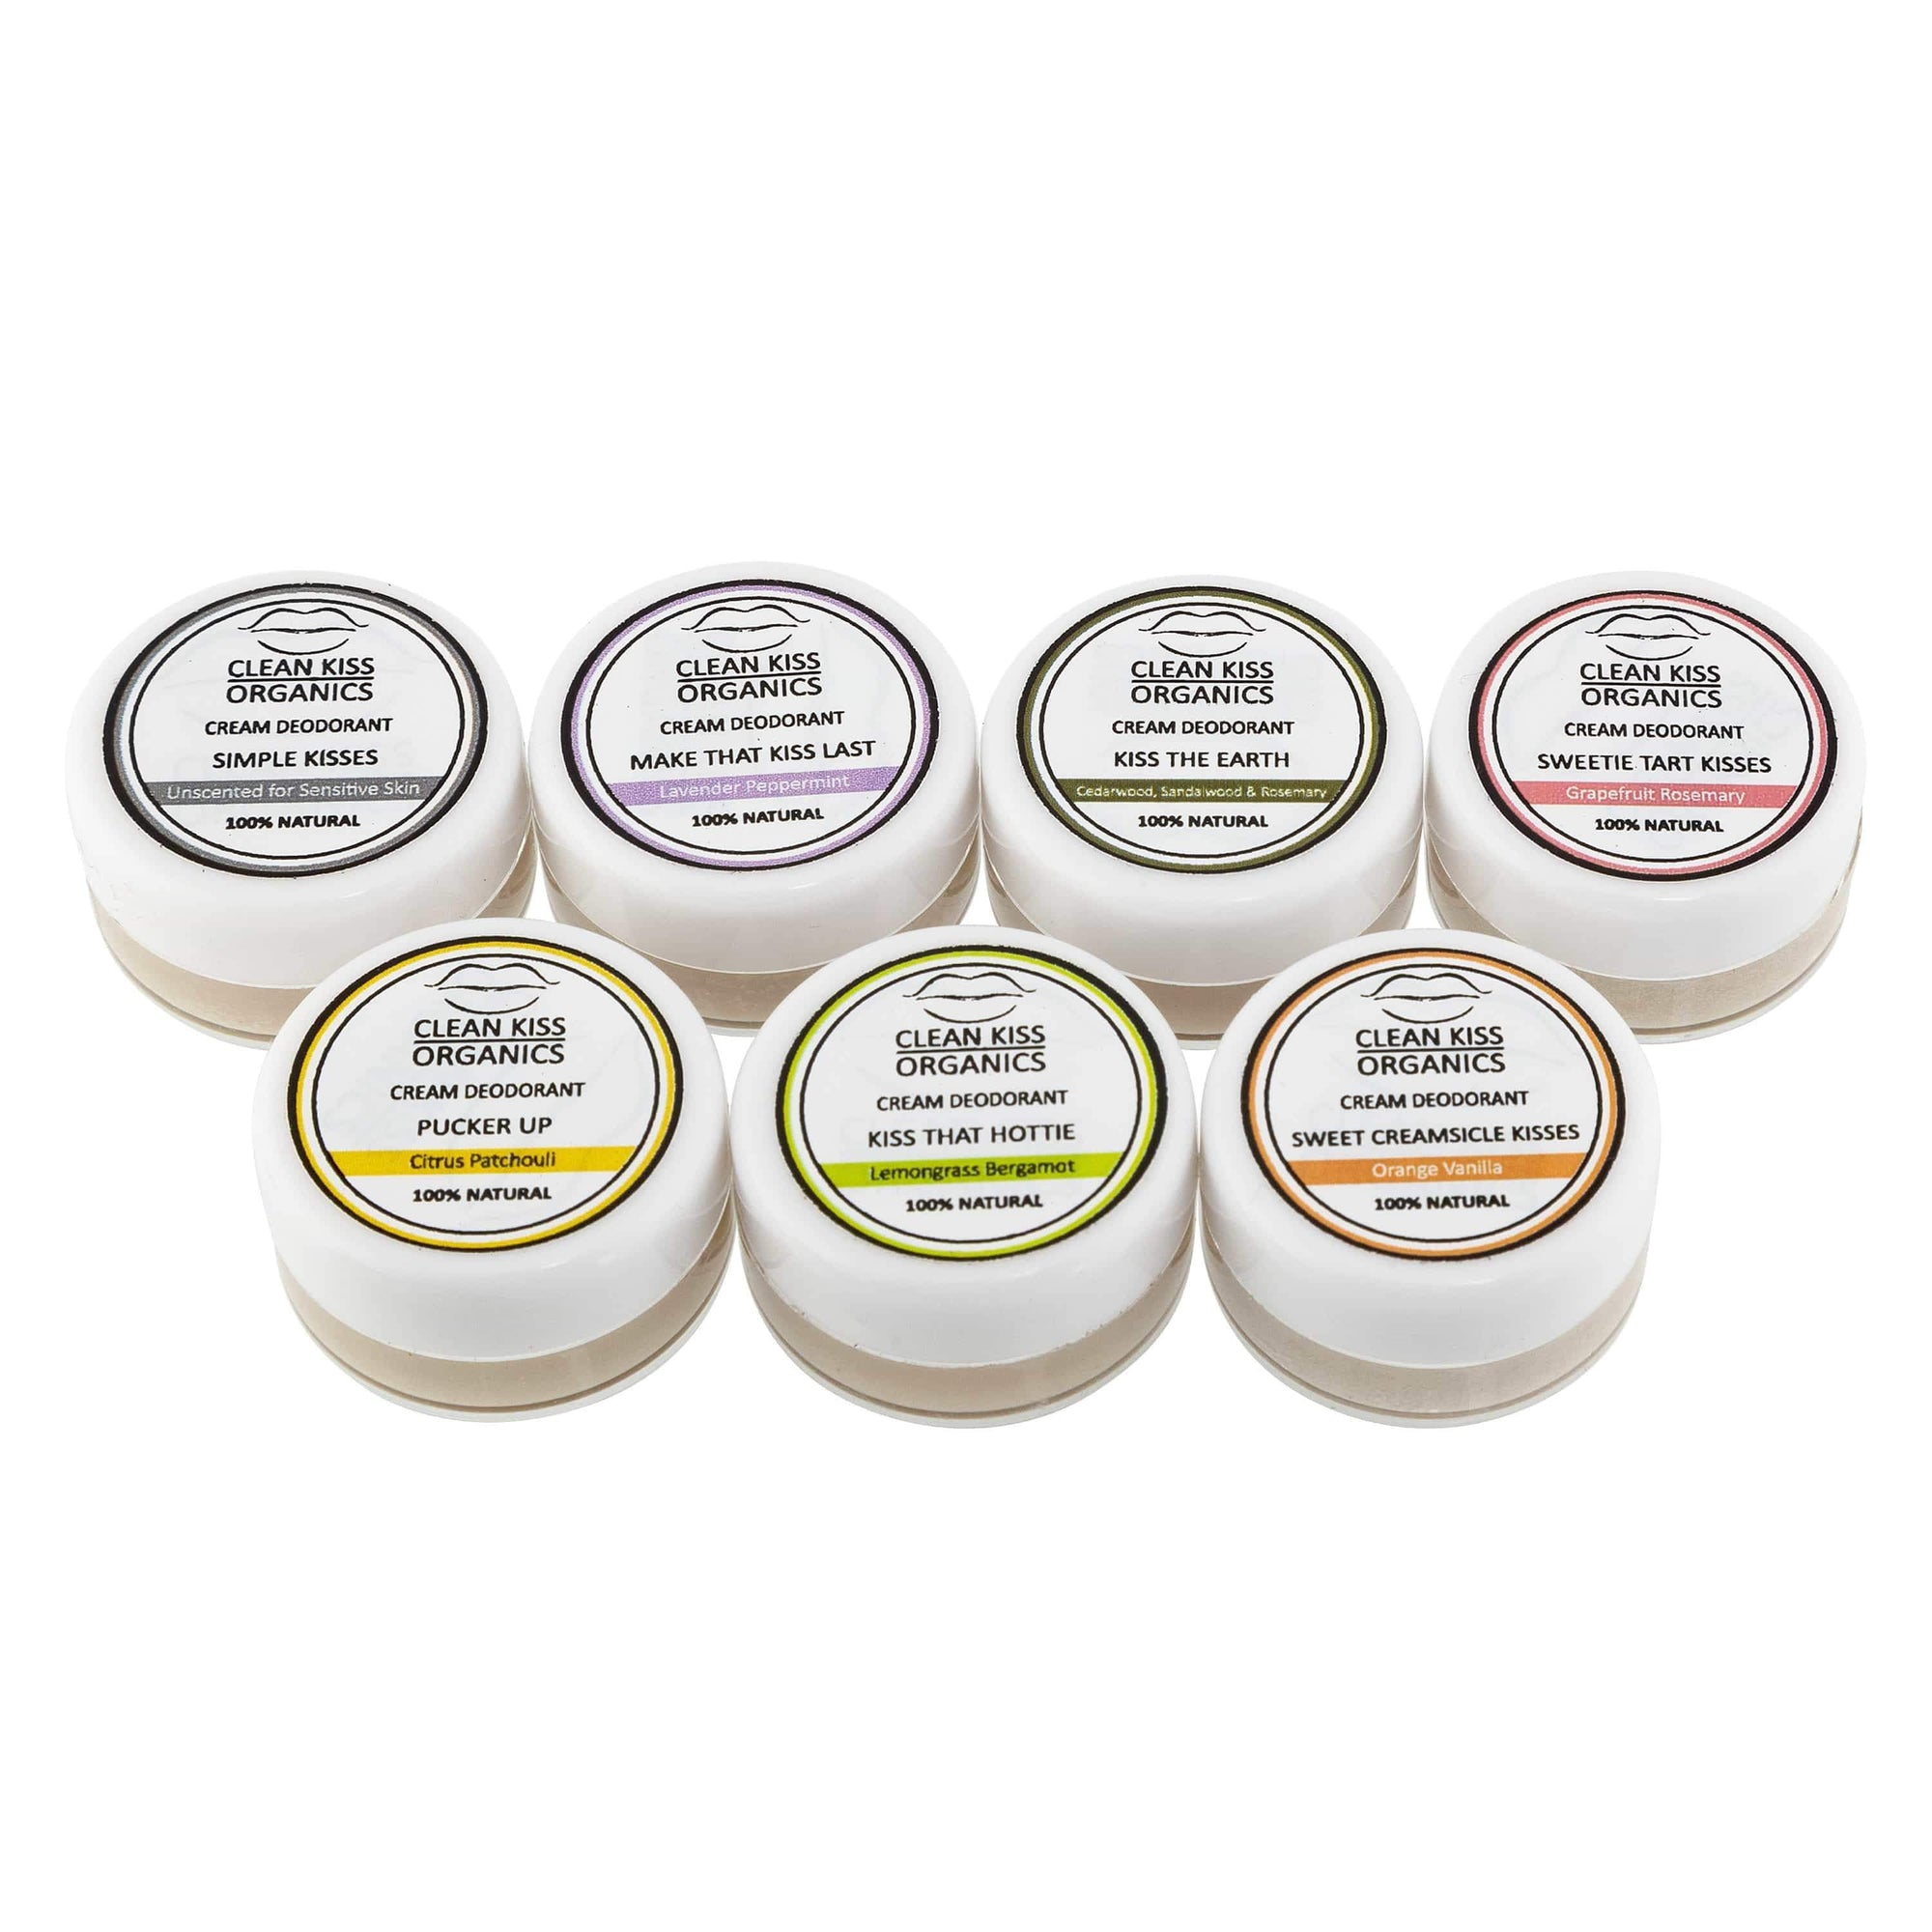 Natural deodorant 7-piece sample set to try all our scents